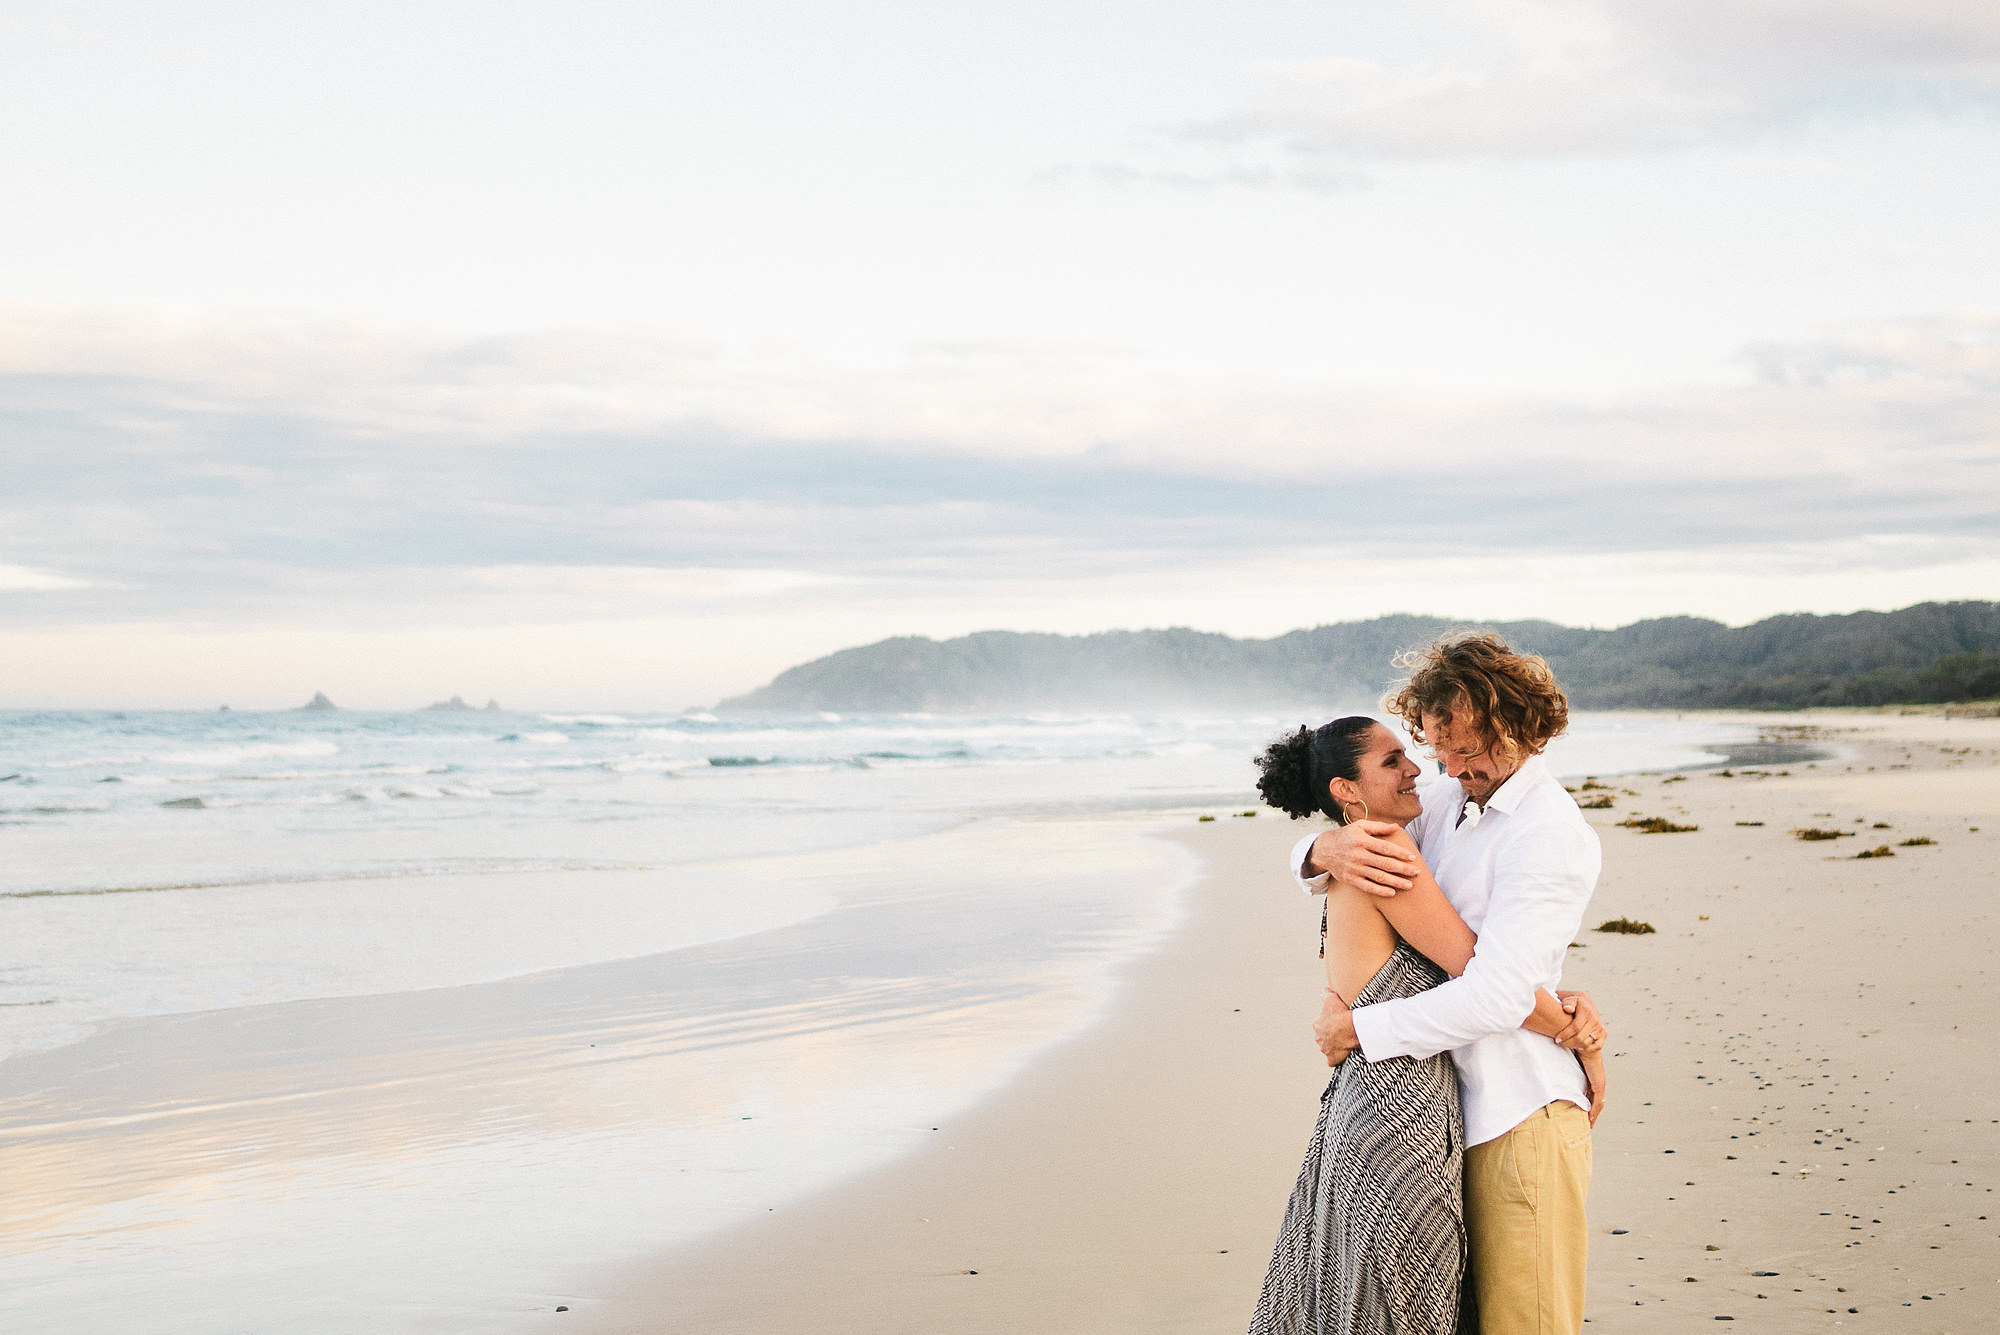 Fotograf Konstanz - Wedding Photographer ByronBay Australia EFP 083 - Destination Wedding in Byron Bay, Australien  - 179 -